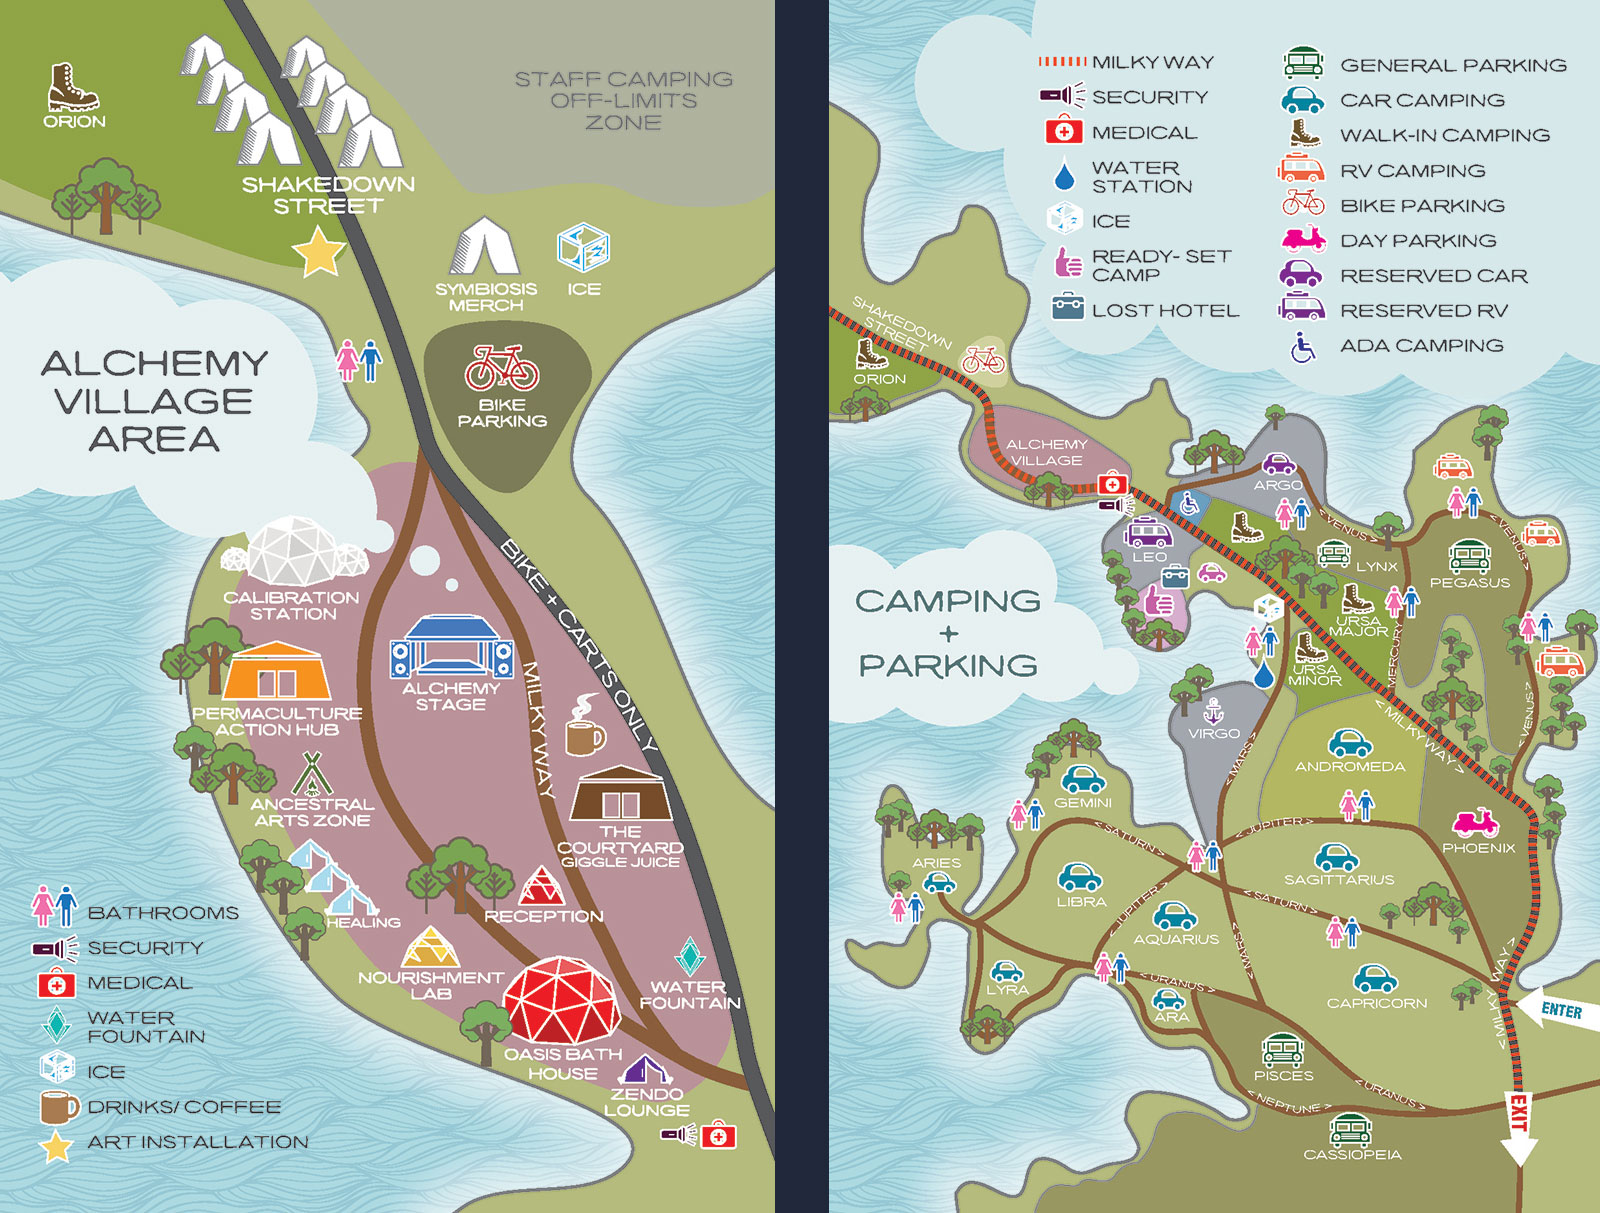 SYMBIOSIS 2015 ALCHEMY VILLAGE AREA CAMPING PARKING MAP